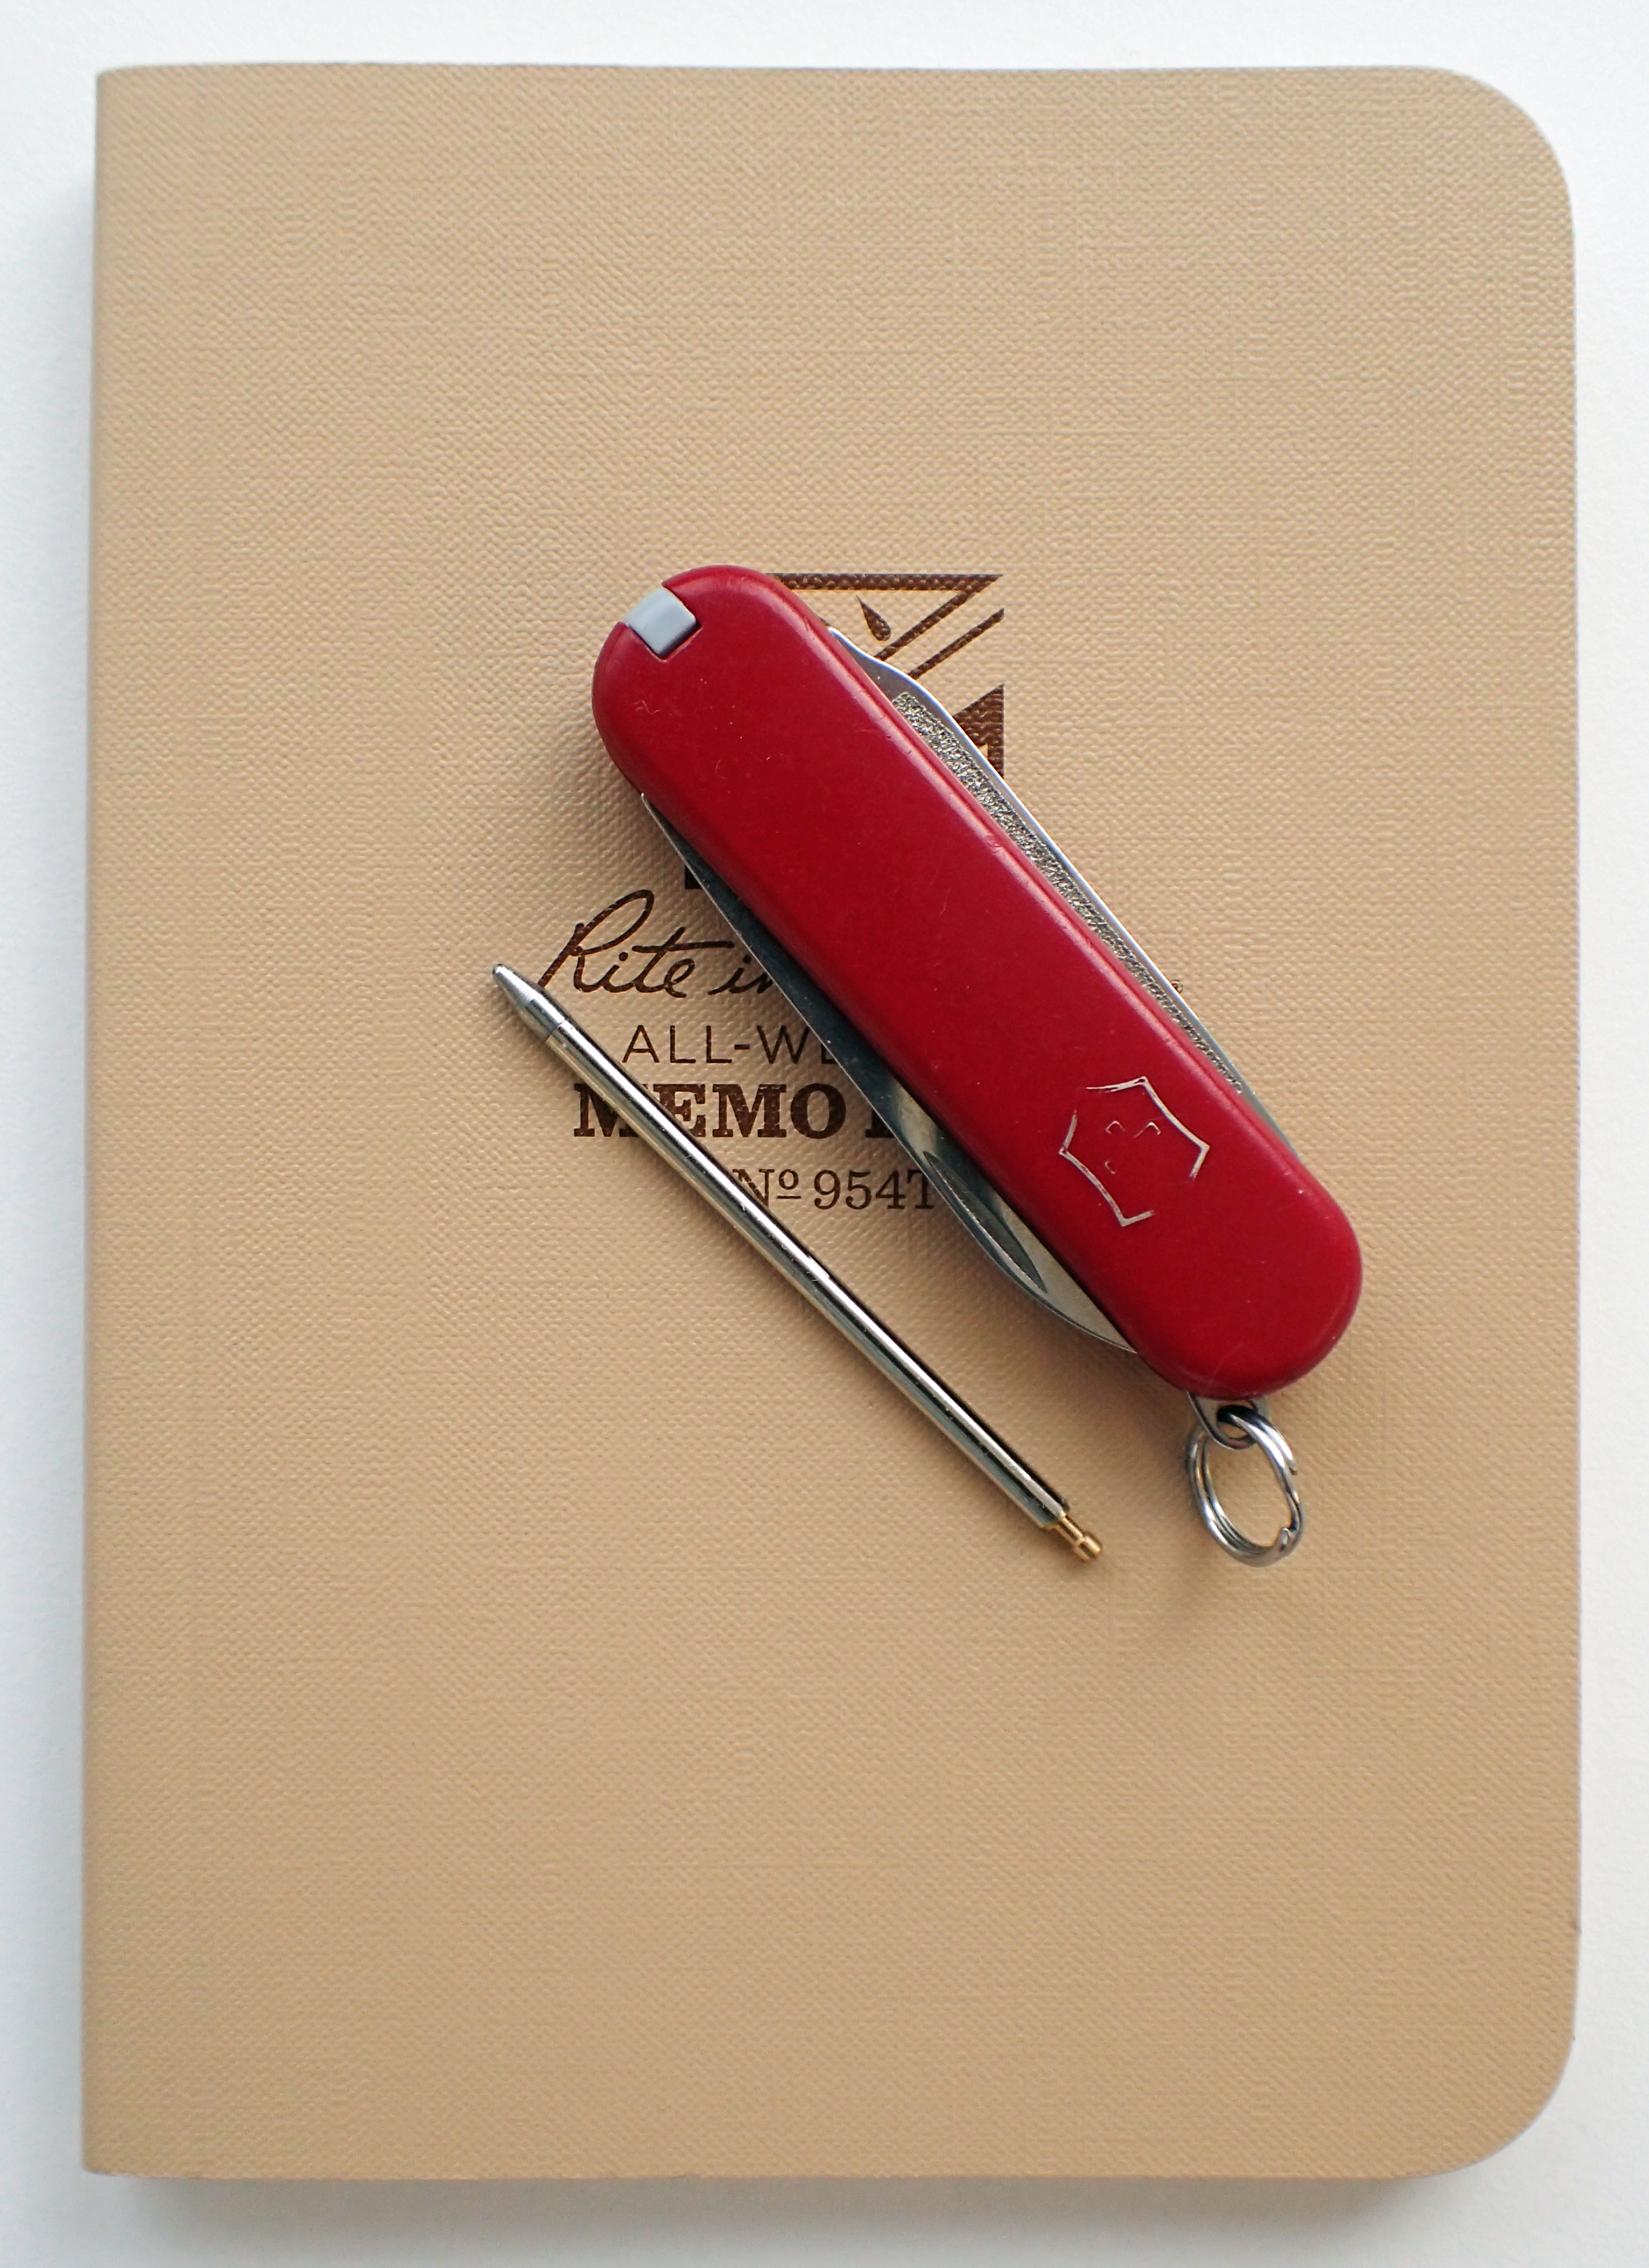 Victorinox Scribe with minuscule pen removed